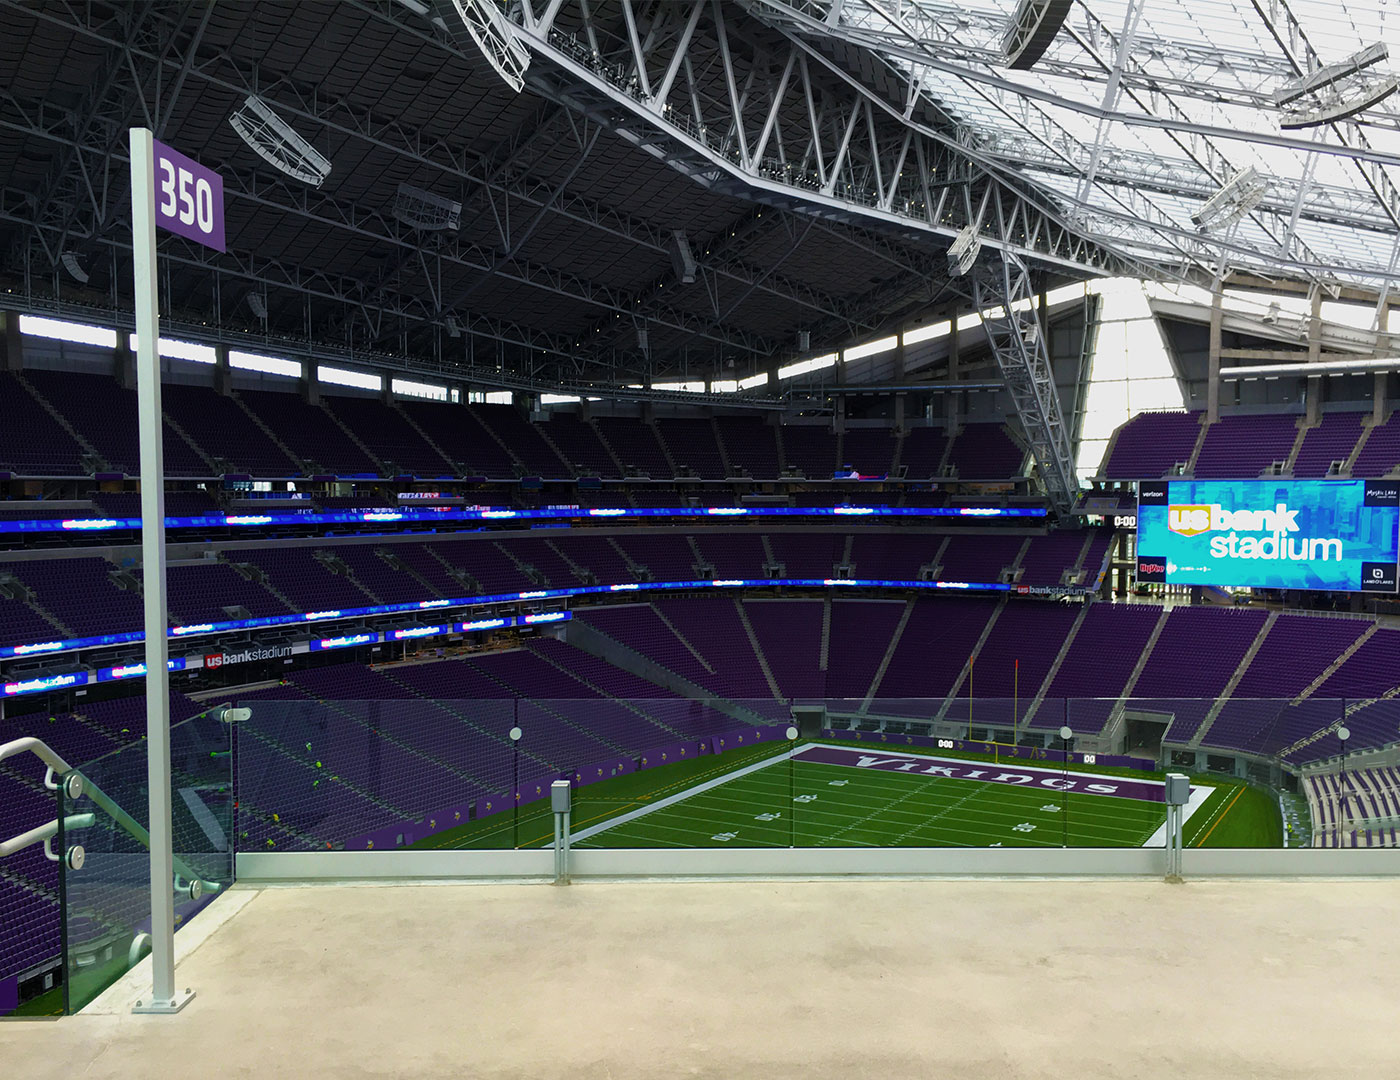 U. S. Bank Stadium ADA seating areas